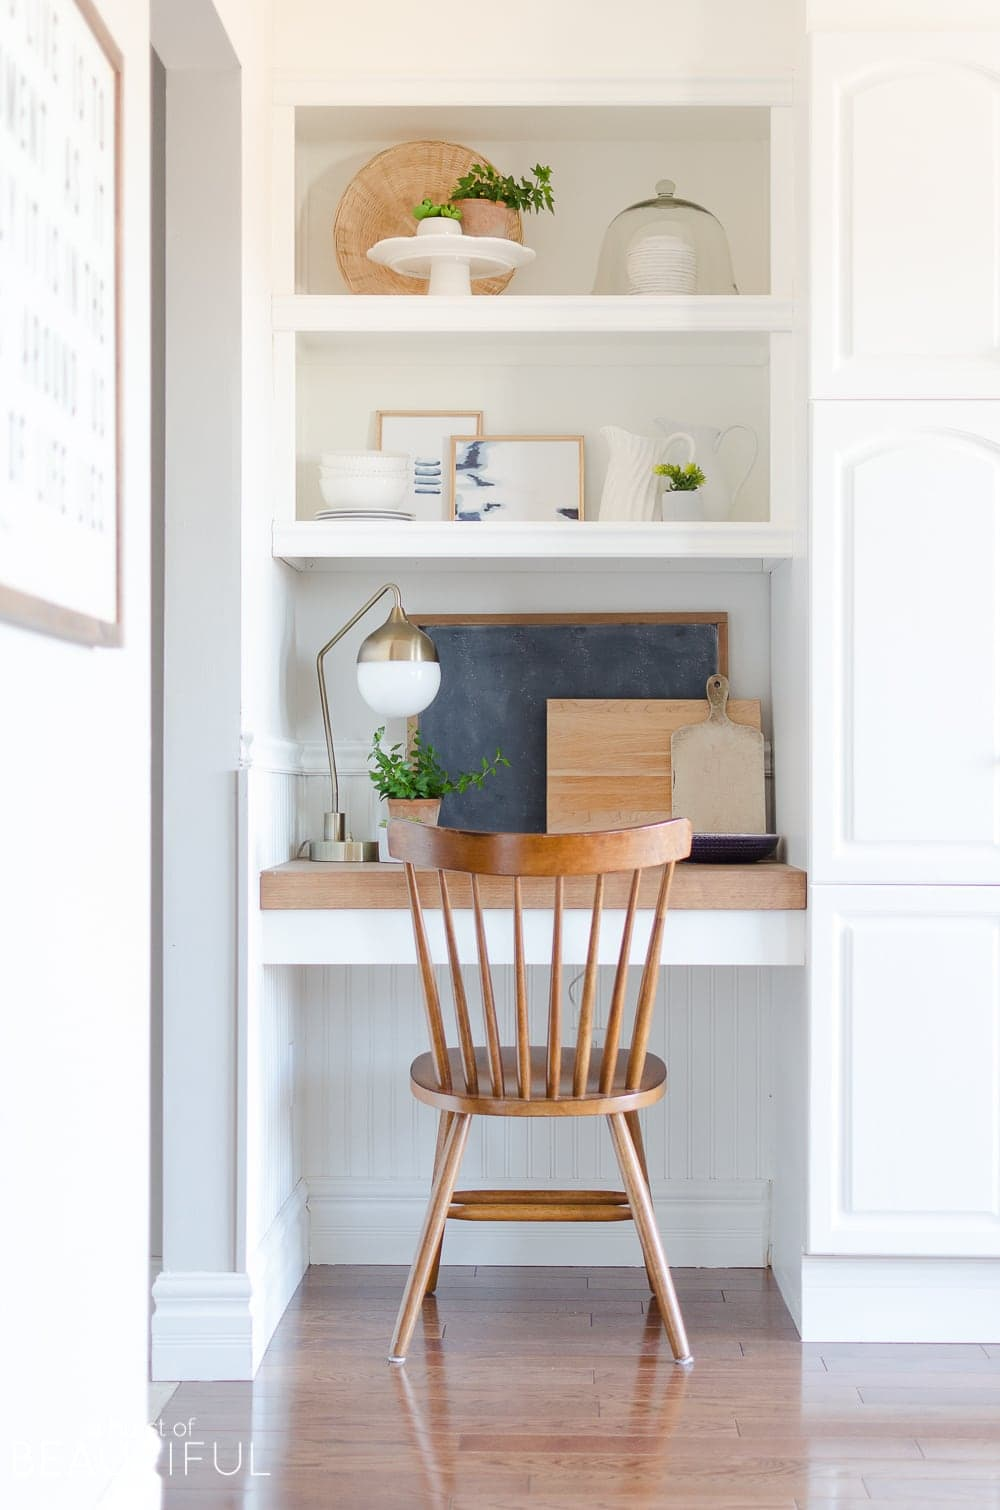 Small workspace with a basic wooden chair